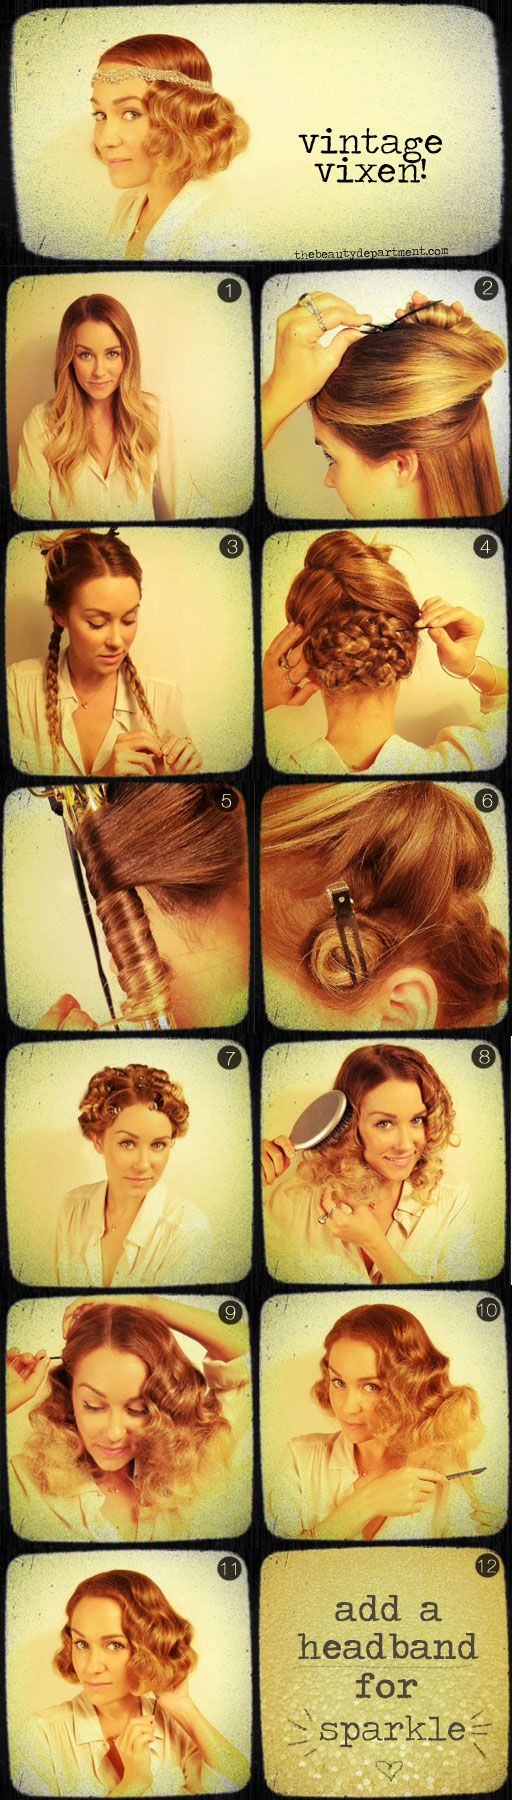 very prettyHairstyles, Hair Tutorials, Halloween Hair, Vintage Hair, Vintage Vixen, Long Hair, Hair Style, Lauren Conrad, 1920S Hair